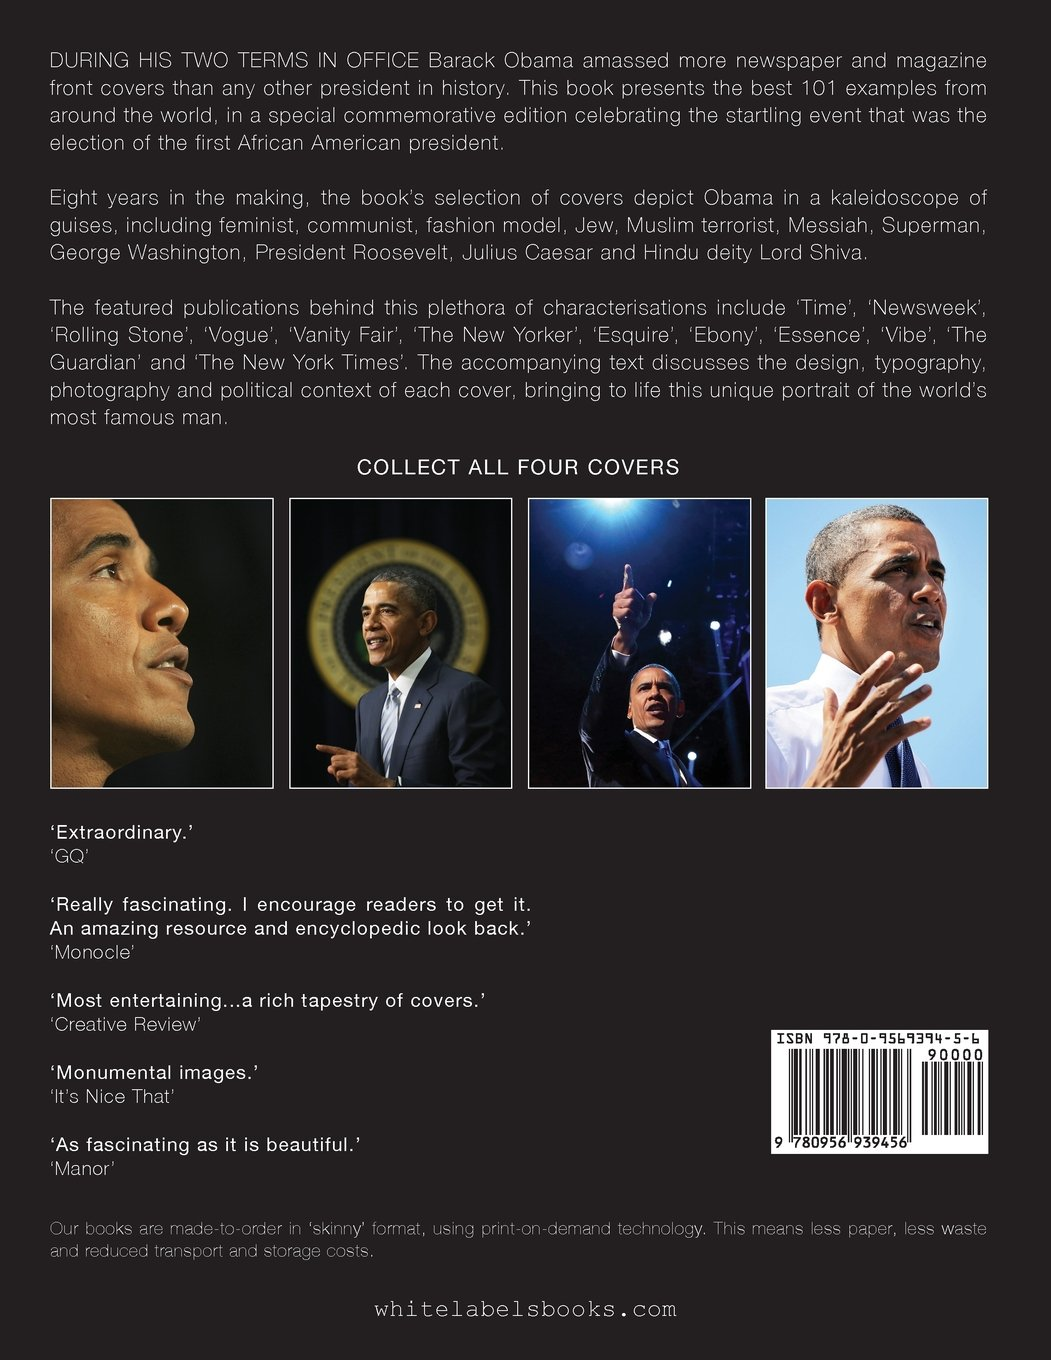 Obama: 101 Best Covers: 'A New Illustrated Biography Of The Election Of America's 44th President (Paperback)'